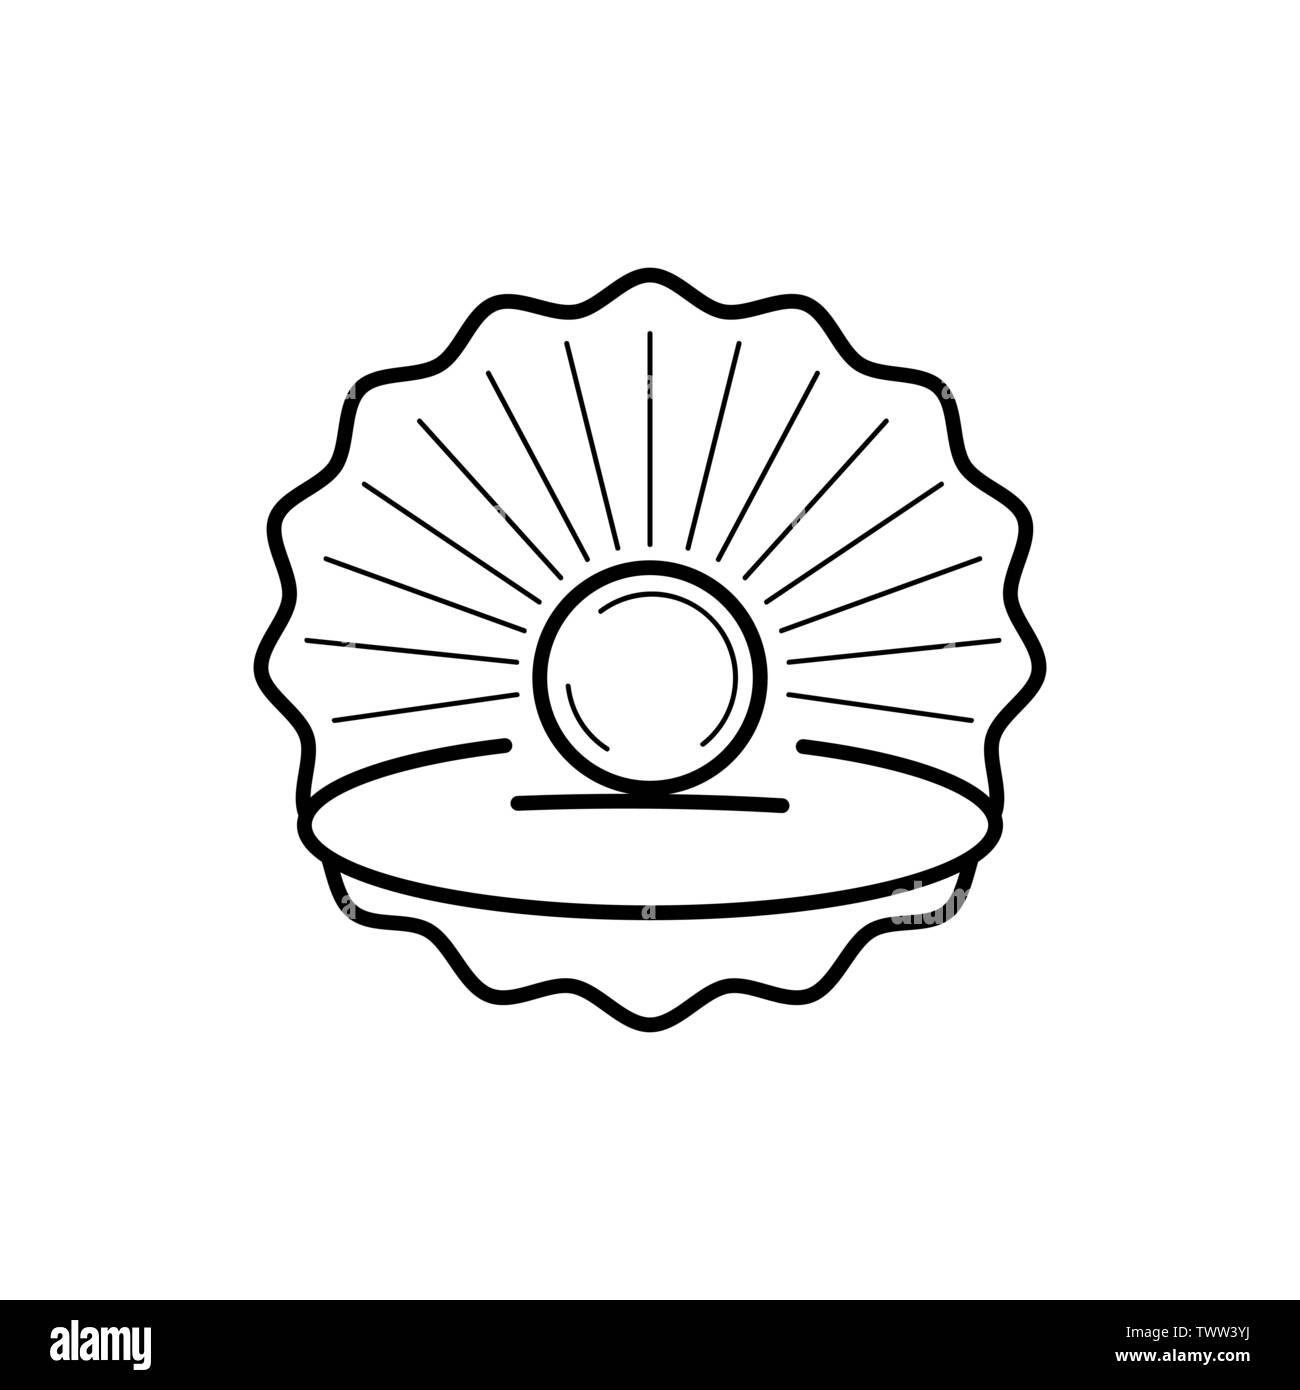 Seashell With Pearl Outline Icon Ready For Your Design, Greeting Card - Stock Image